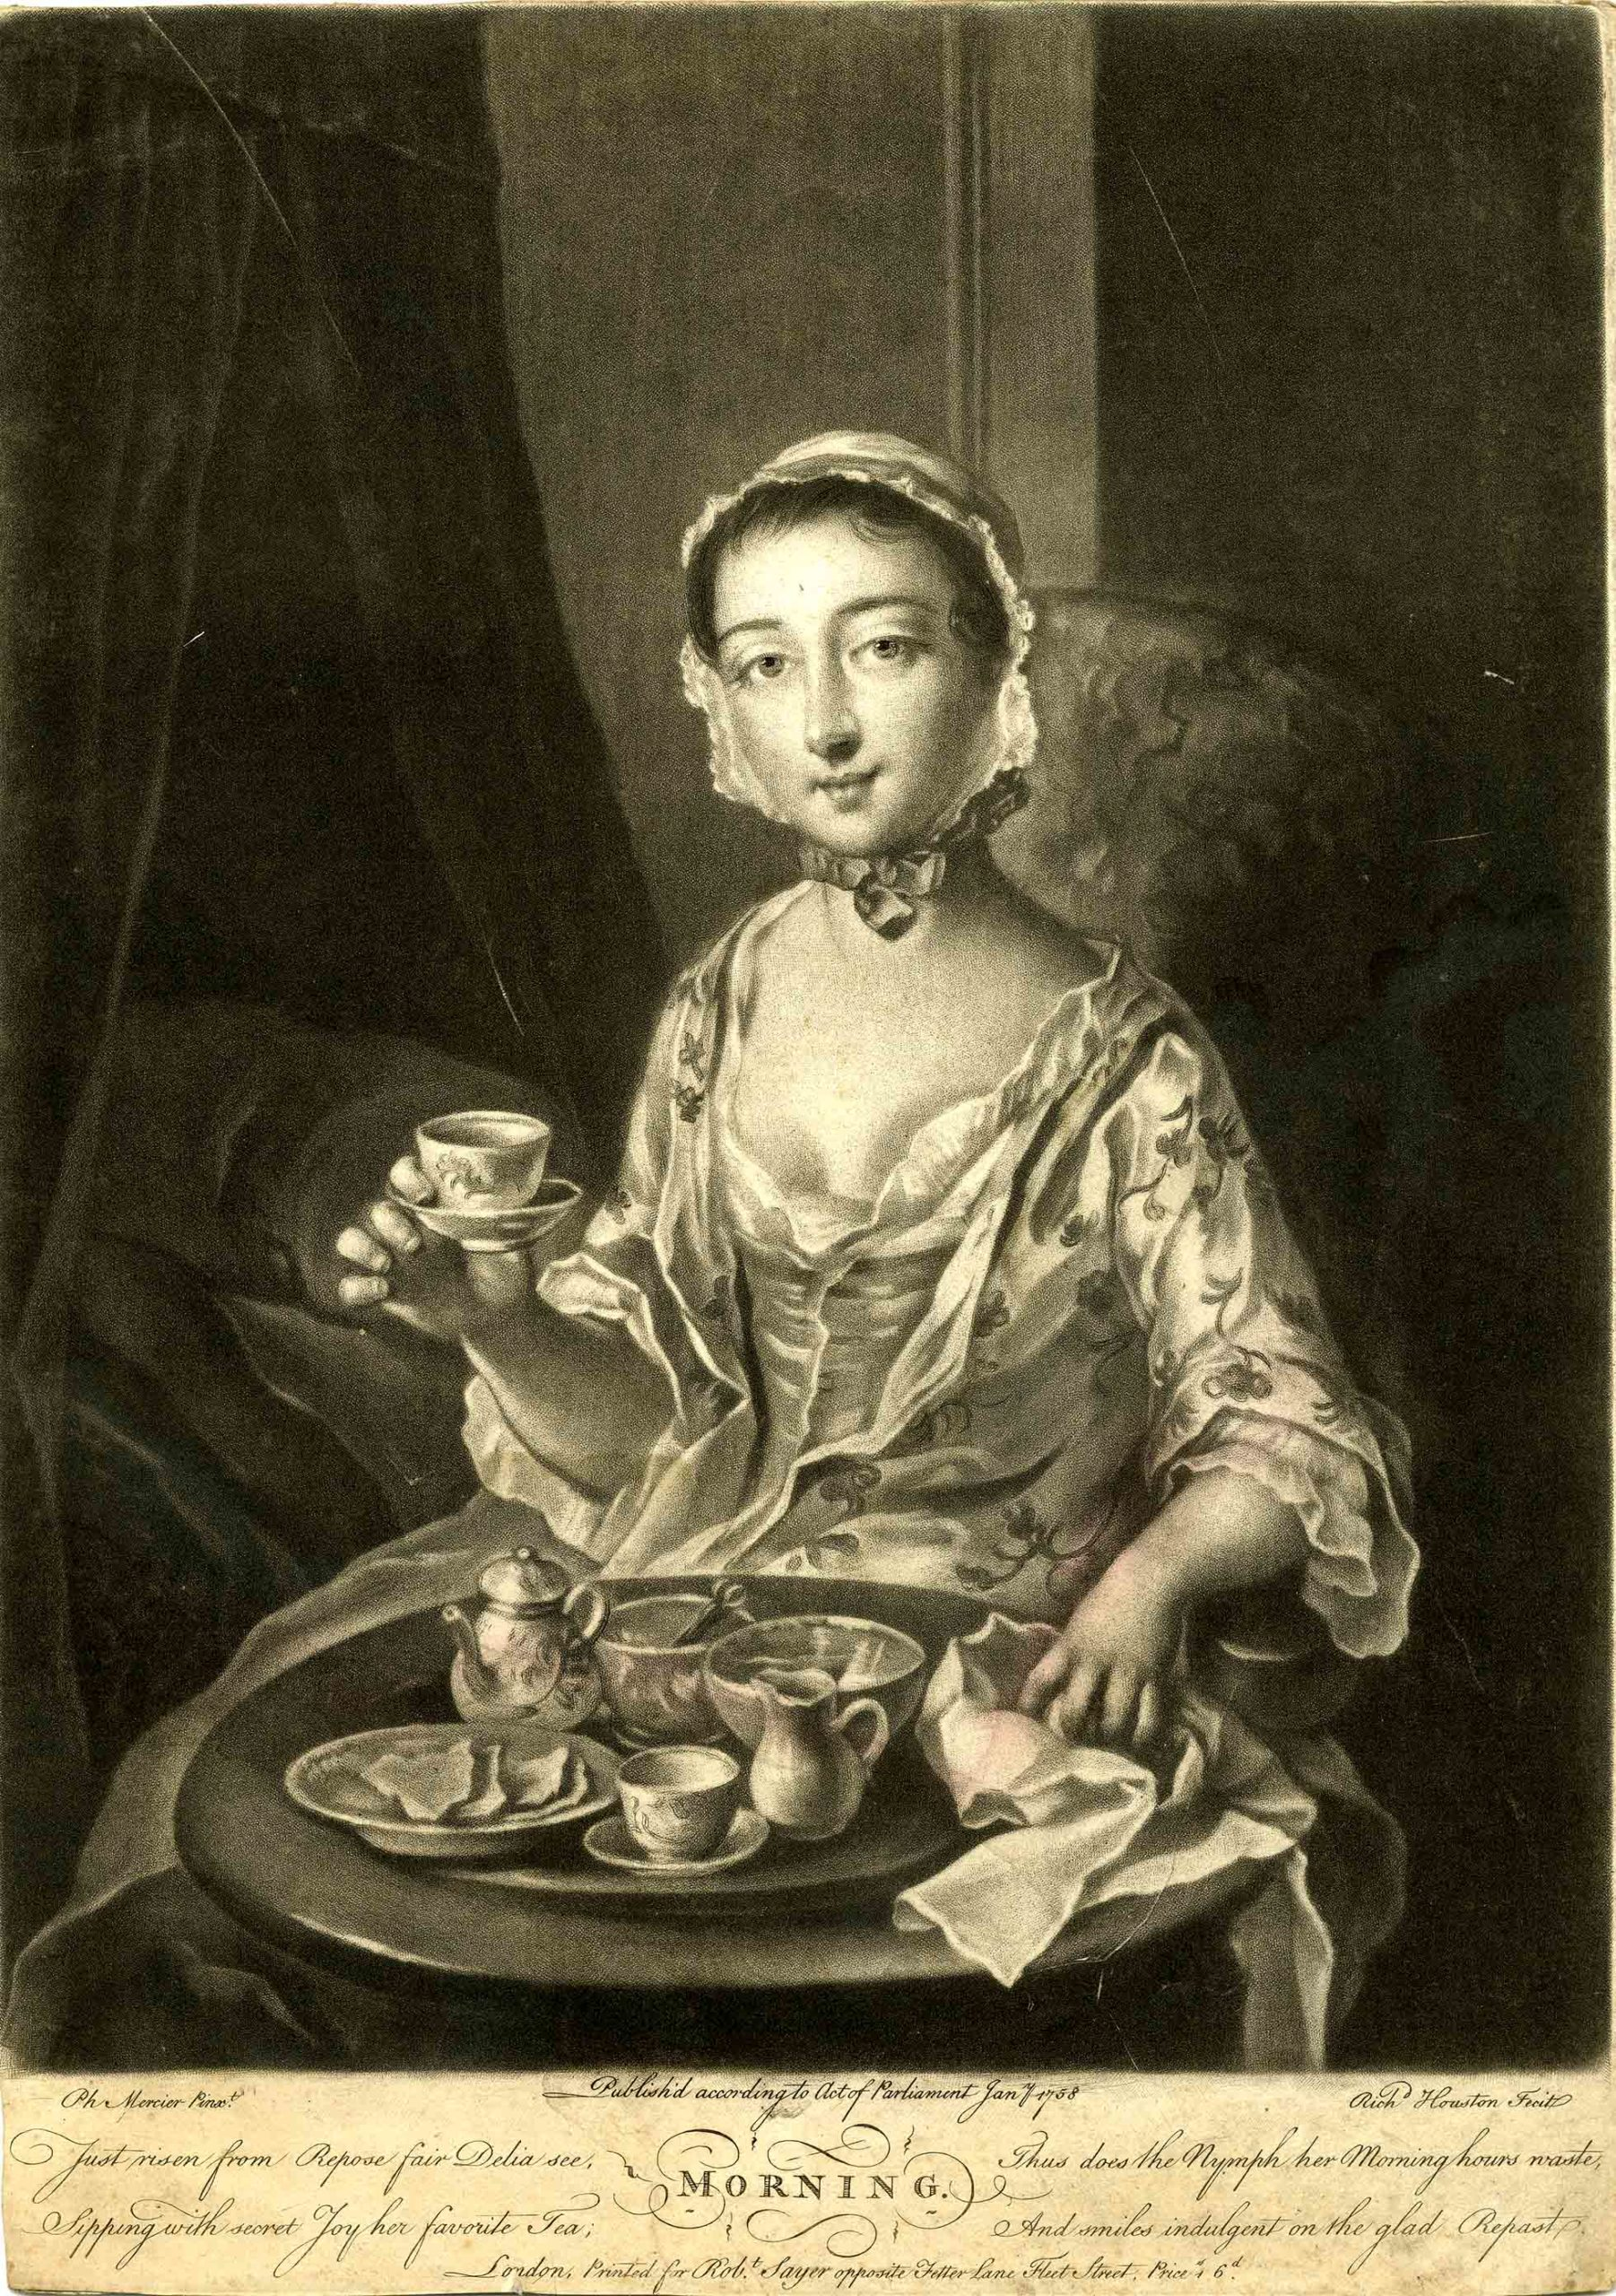 Portrait of a fashionably dressed young lady drinking tea and having breakfast.